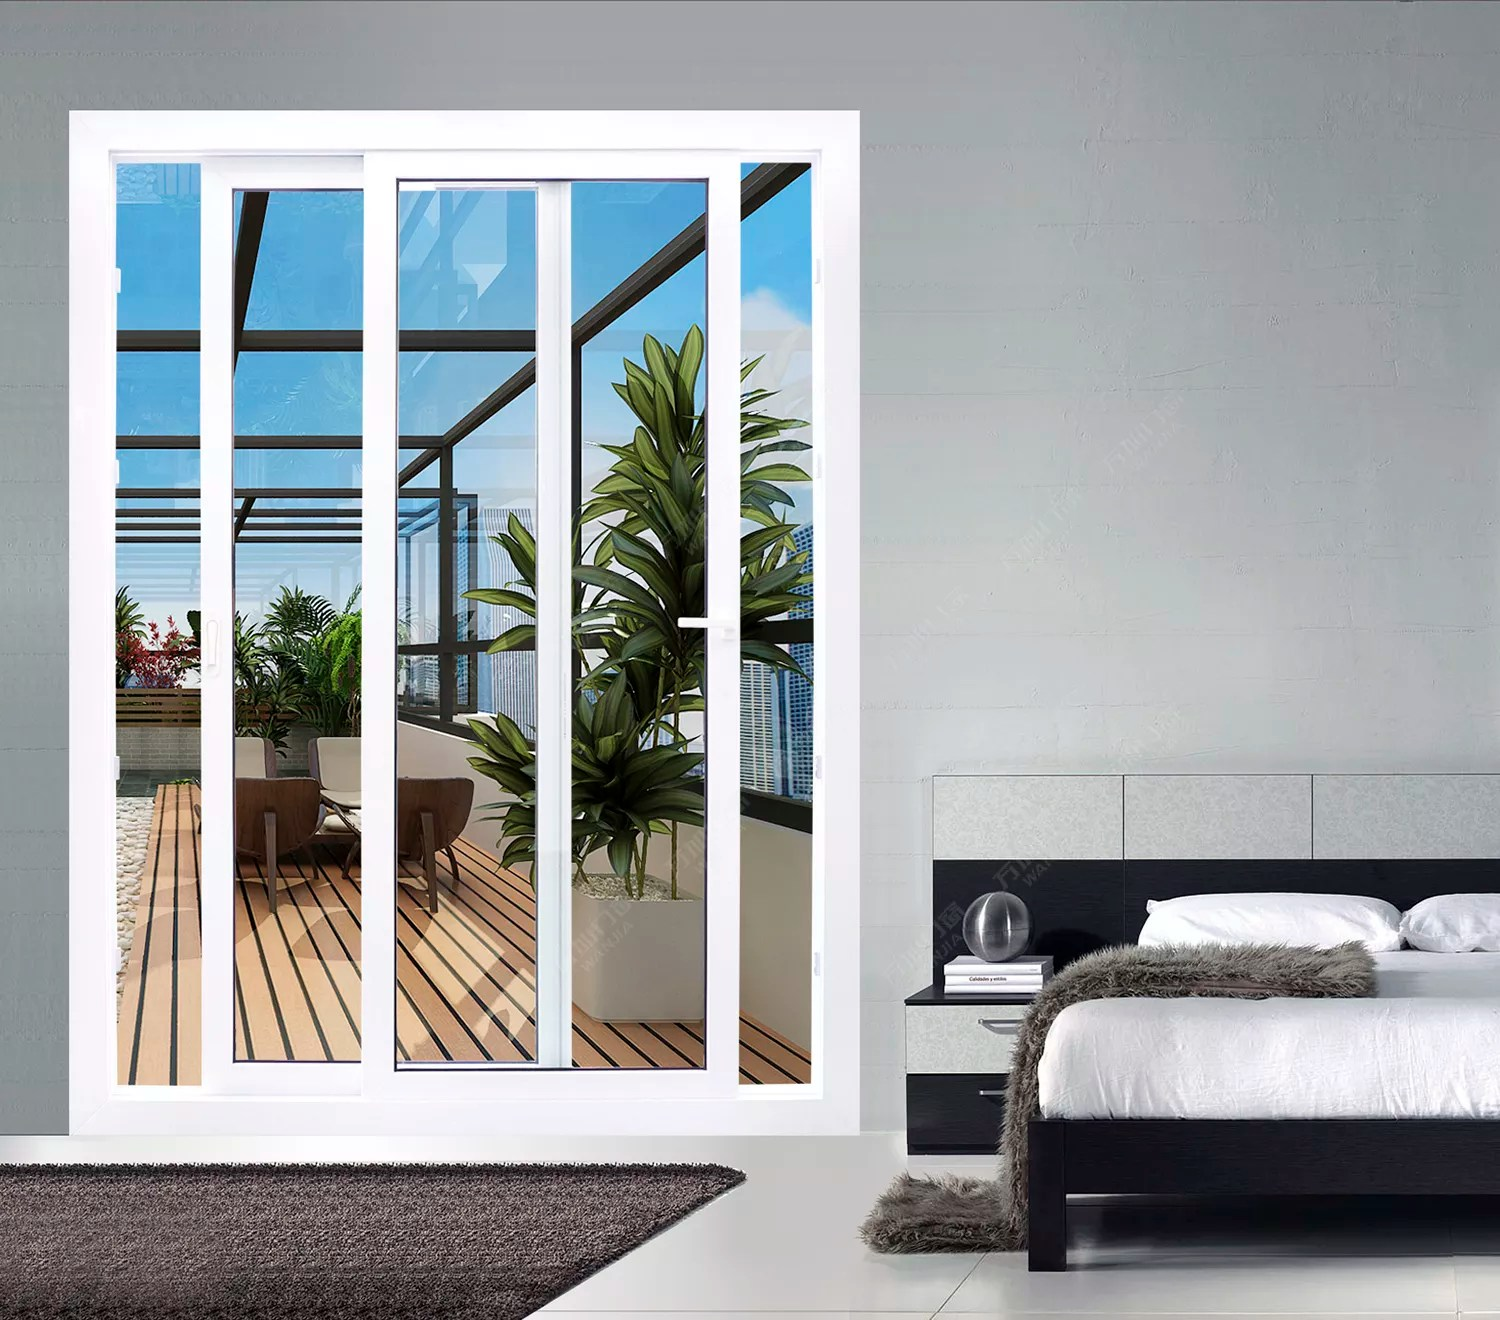 Upvc Pvc Plastic French Patio Balcony Double Door Prices For Bedroom Buy Sliding Glass Door For Living Room Used Sliding Glass Doors Sale Balcony Sliding Glass Door Product On Alibaba Com